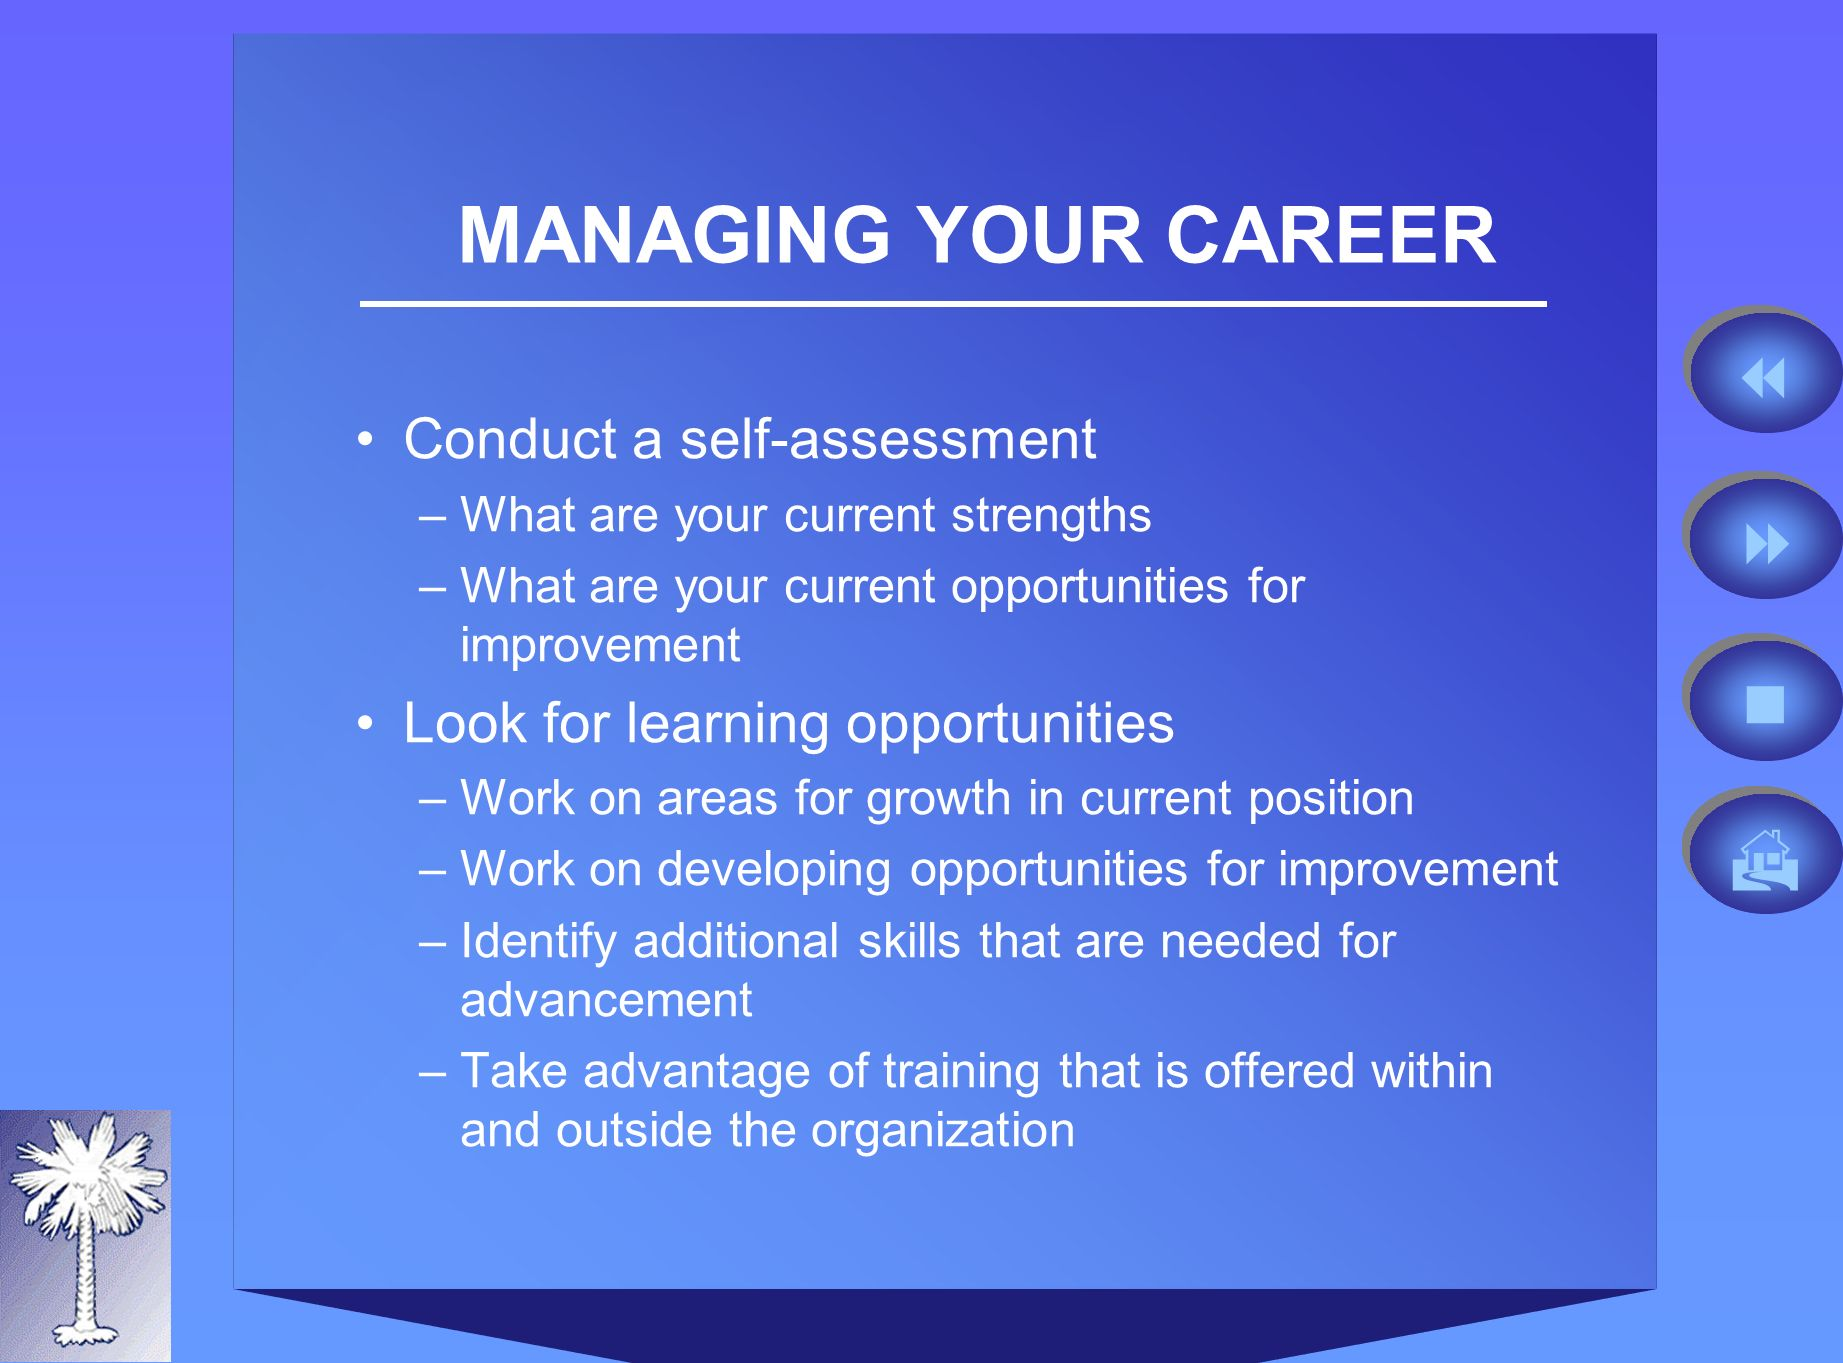 MANAGING YOUR CAREER Conduct a self-assessment –What are your current strengths –What are your current opportunities for improvement Look for learning opportunities –Work on areas for growth in current position –Work on developing opportunities for improvement –Identify additional skills that are needed for advancement –Take advantage of training that is offered within and outside the organization